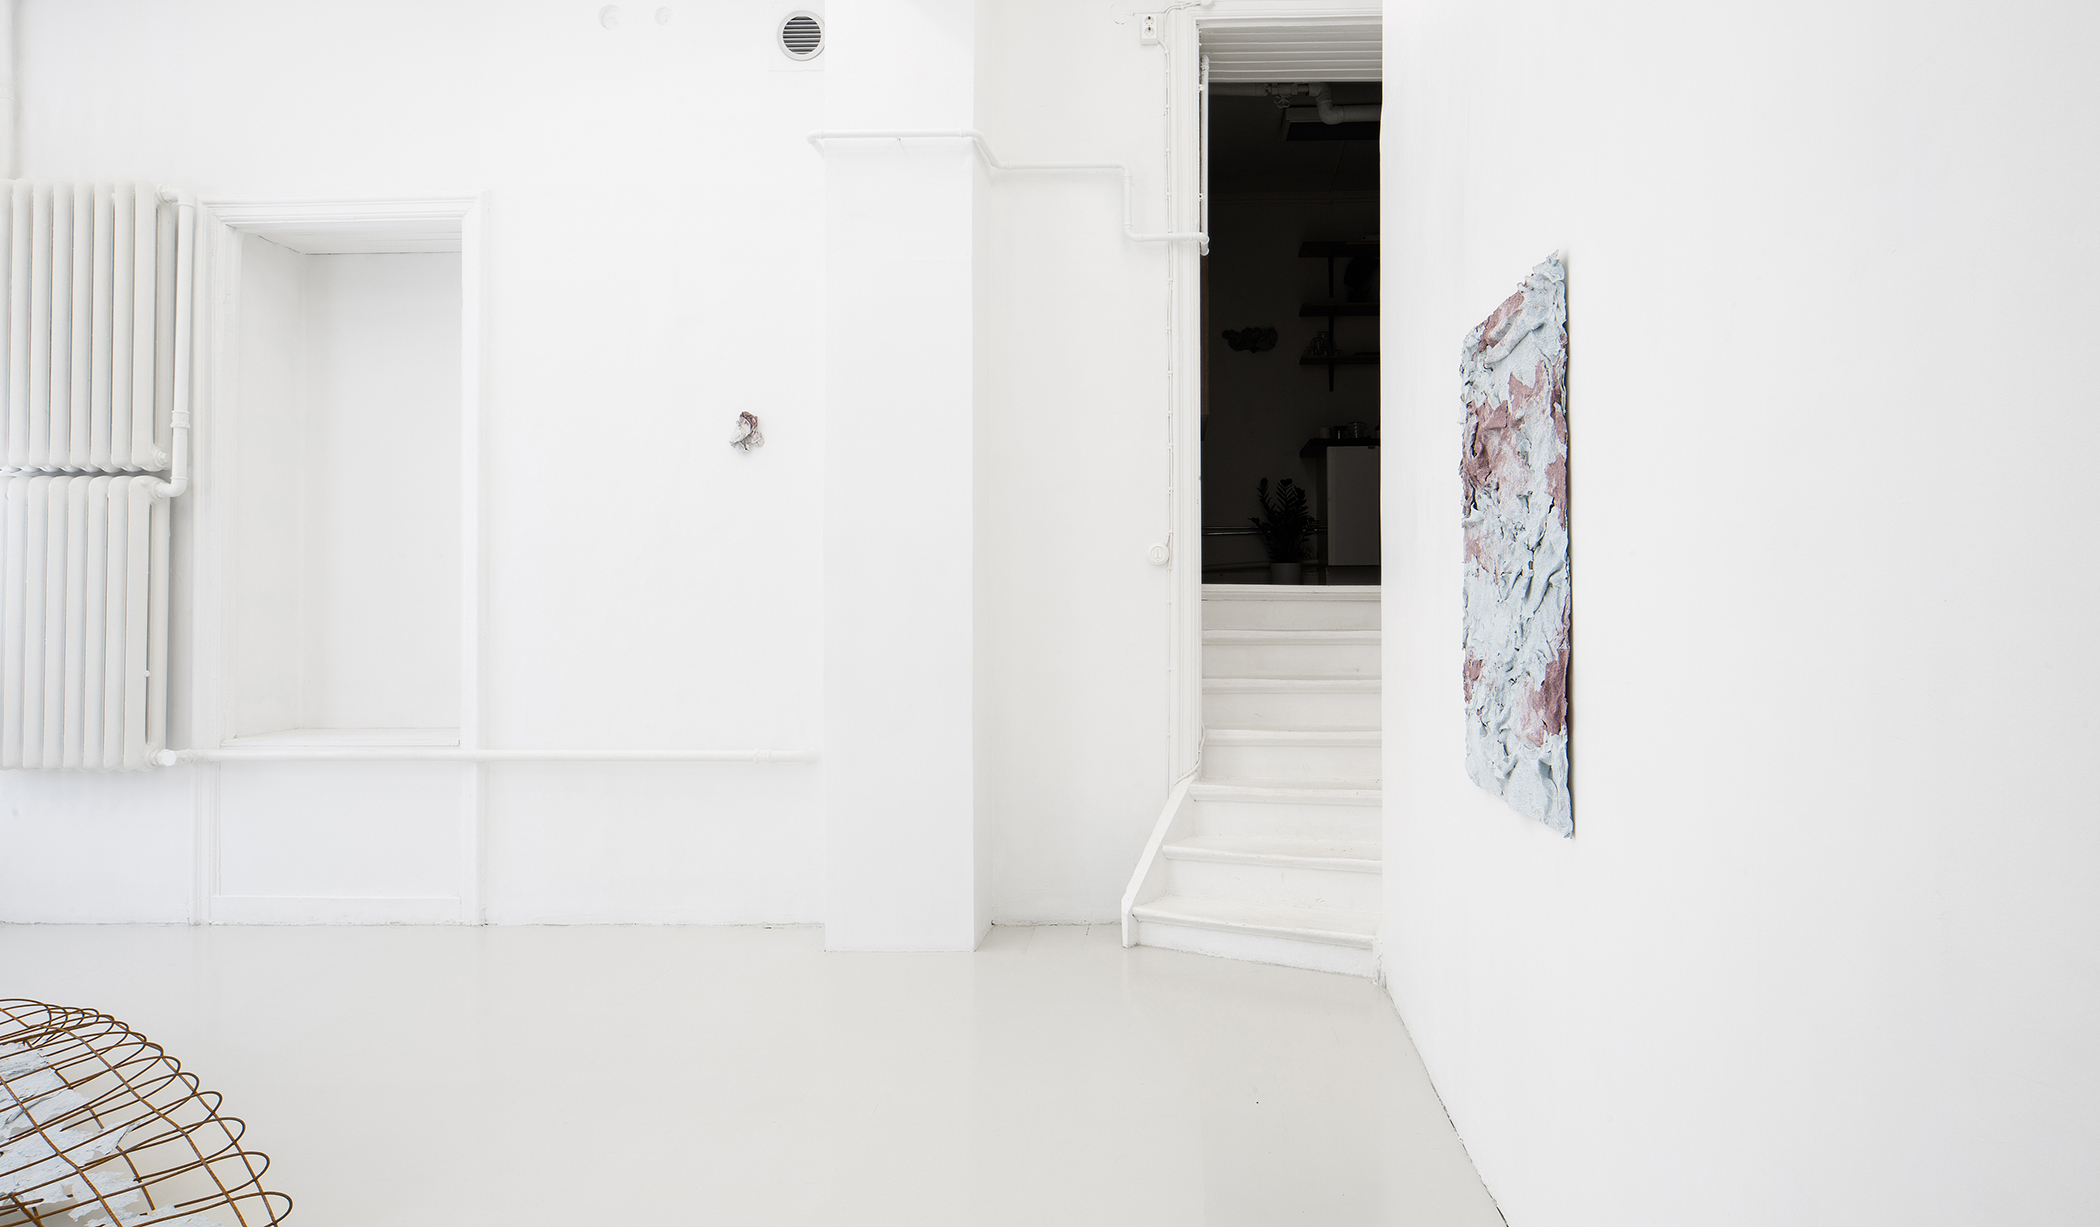 Installation View, Fanny Hellgren, Withering Postures at NEVVEN Gallery